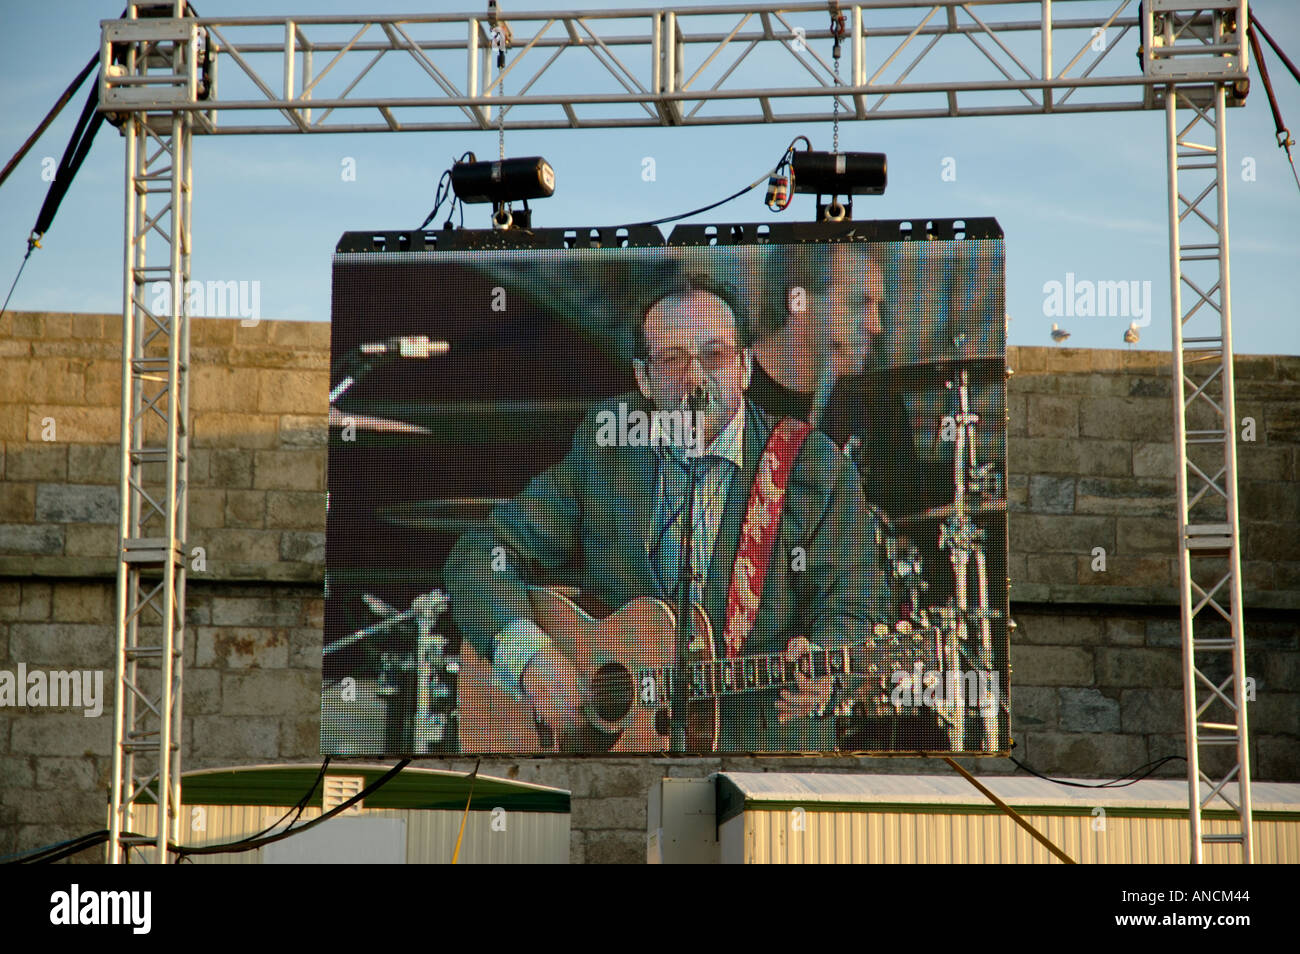 Elvis Costello on a large screen at Newport Folk Festival Editorial use only - Stock Image